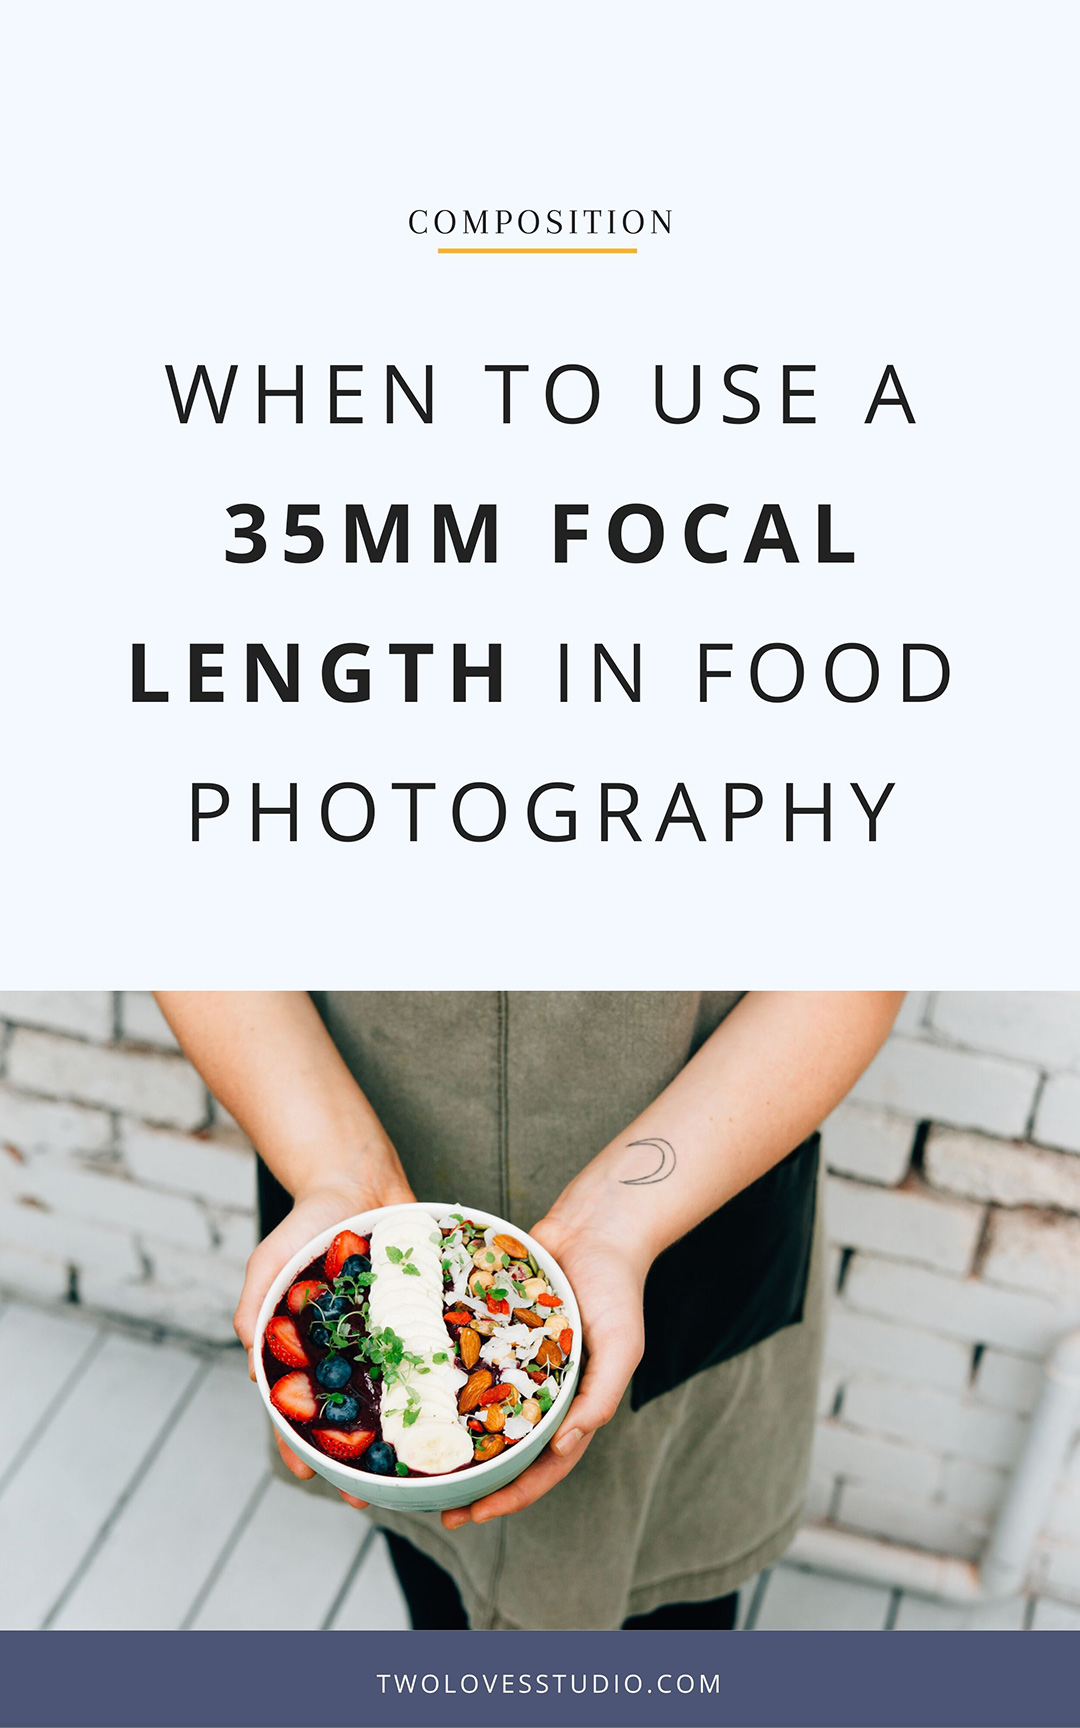 When To Use a 35mm Focal Length in Food Photography